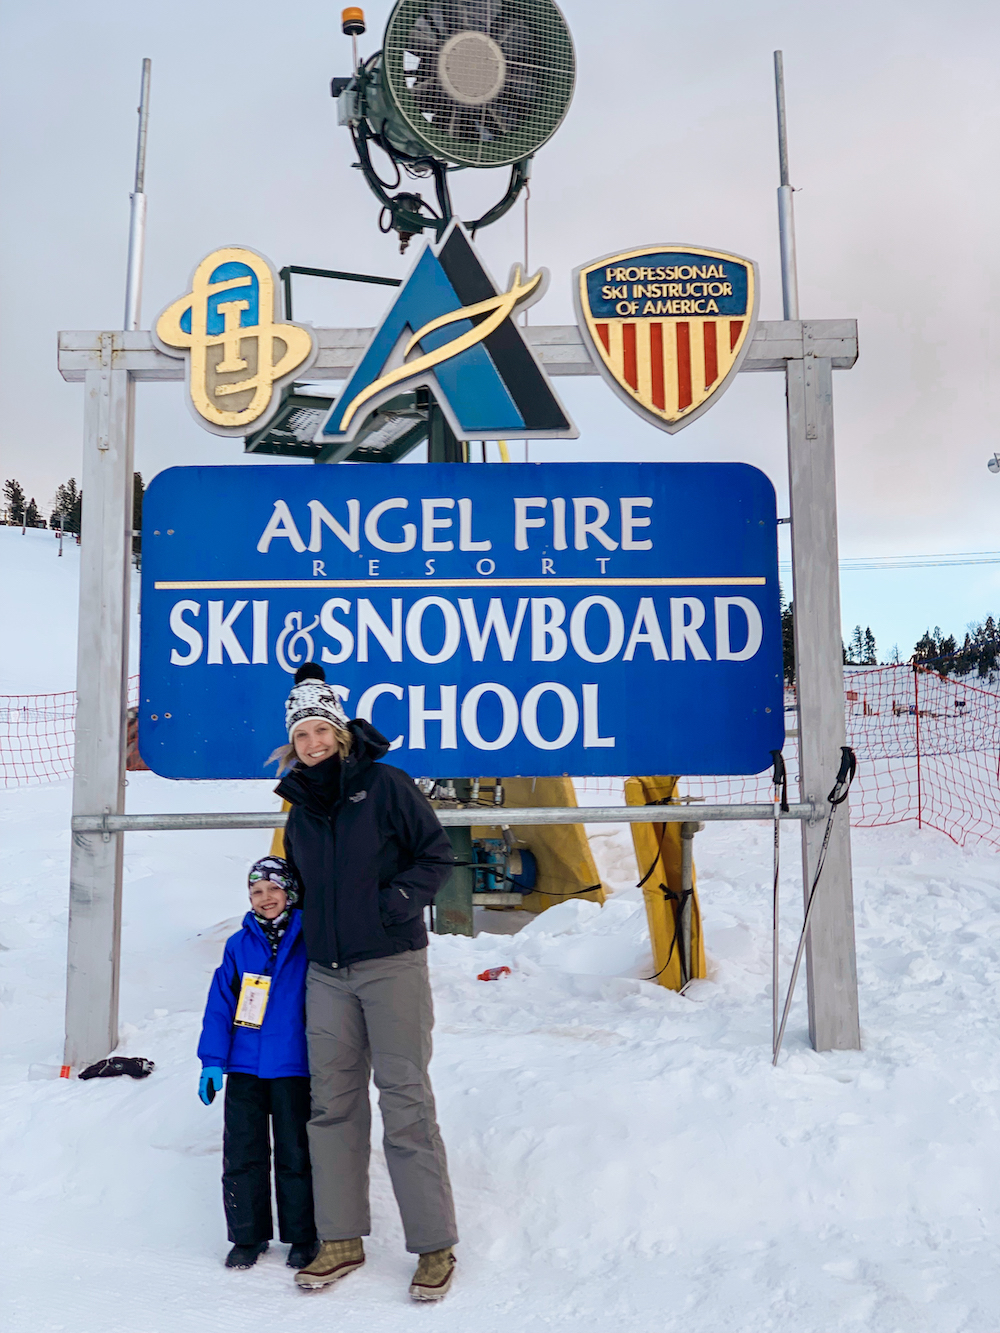 Angel Fire Resort, Angel fire skiing, angel fire hotel, angel fire kids activities, kid friendly skiing, kid ski trip,  Angel Fire New Mexico Travel Guide, Angel Fire Travel Guide, Family Ski Trip, New Mexico Ski Trip, New Mexico skiing, Texas travel blogger, Texas travel blog, New Mexico travel blogger, family travel blog, family travel blogger, snow tubing, kids snow tubing, New Mexico ski trip, Jesse Coulter blog,